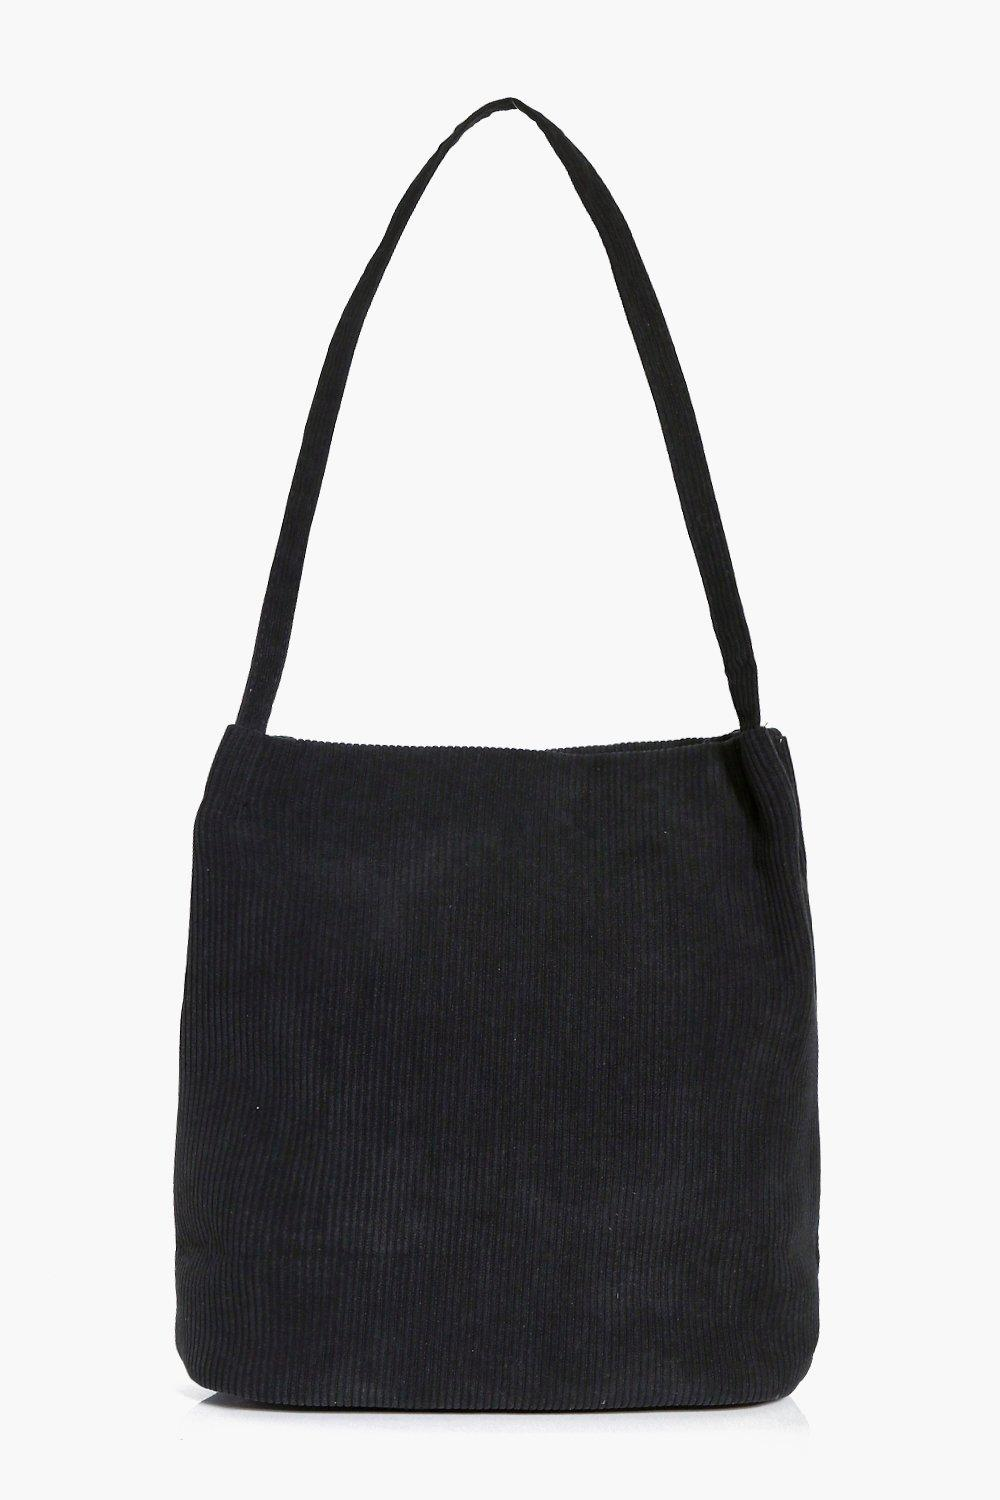 Cord Shopper - black - Jennifer Cord Shopper - bla